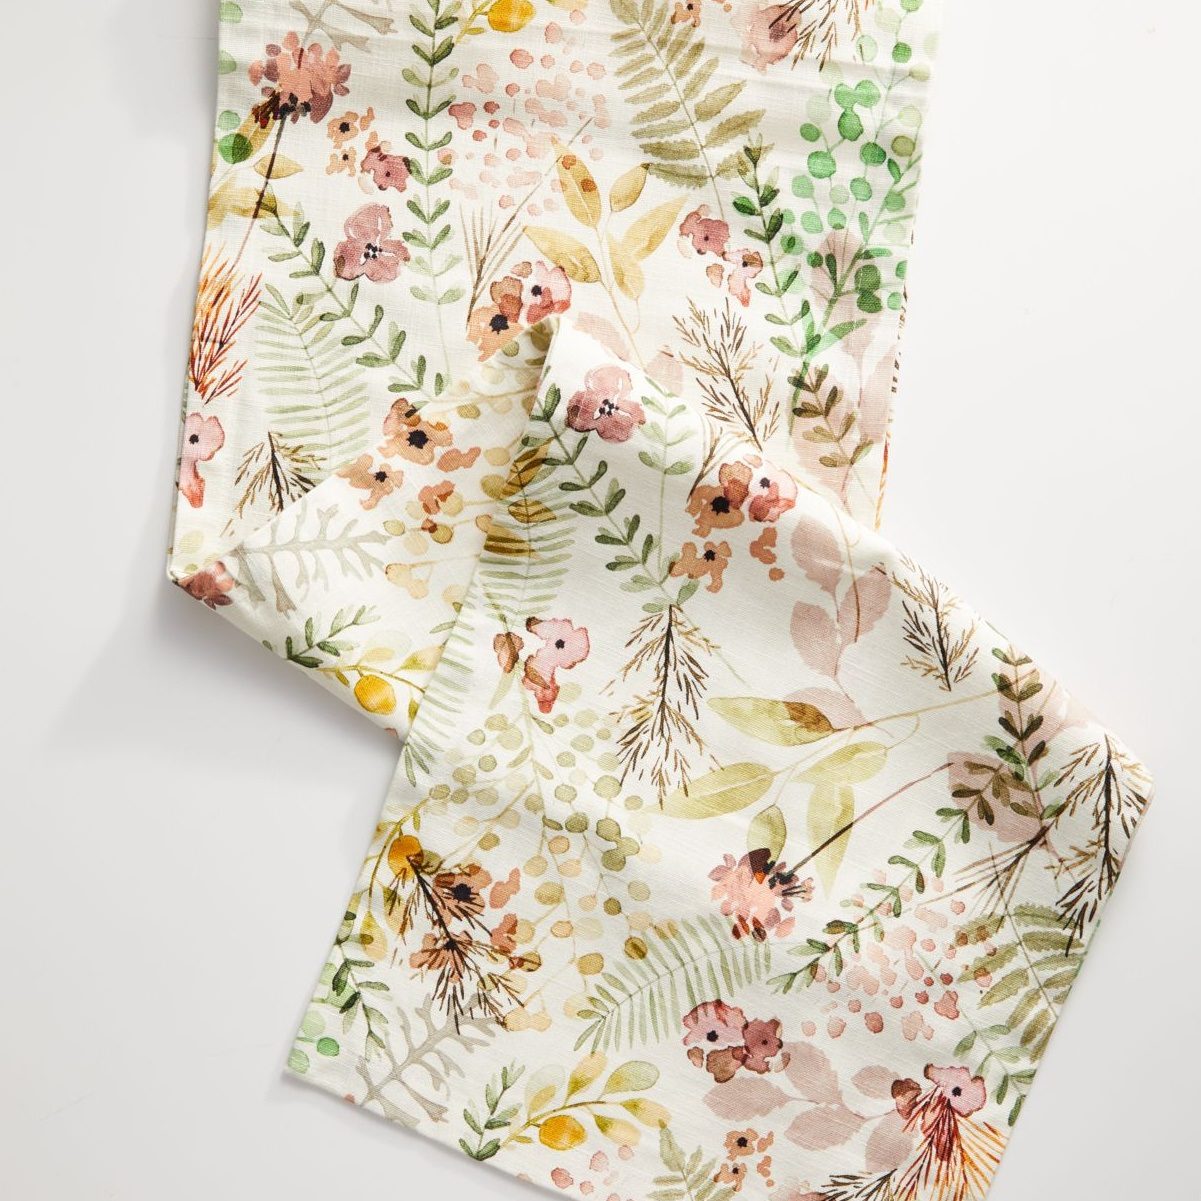 fabric table runner with a spring themed floral pattern of flowers and ferns